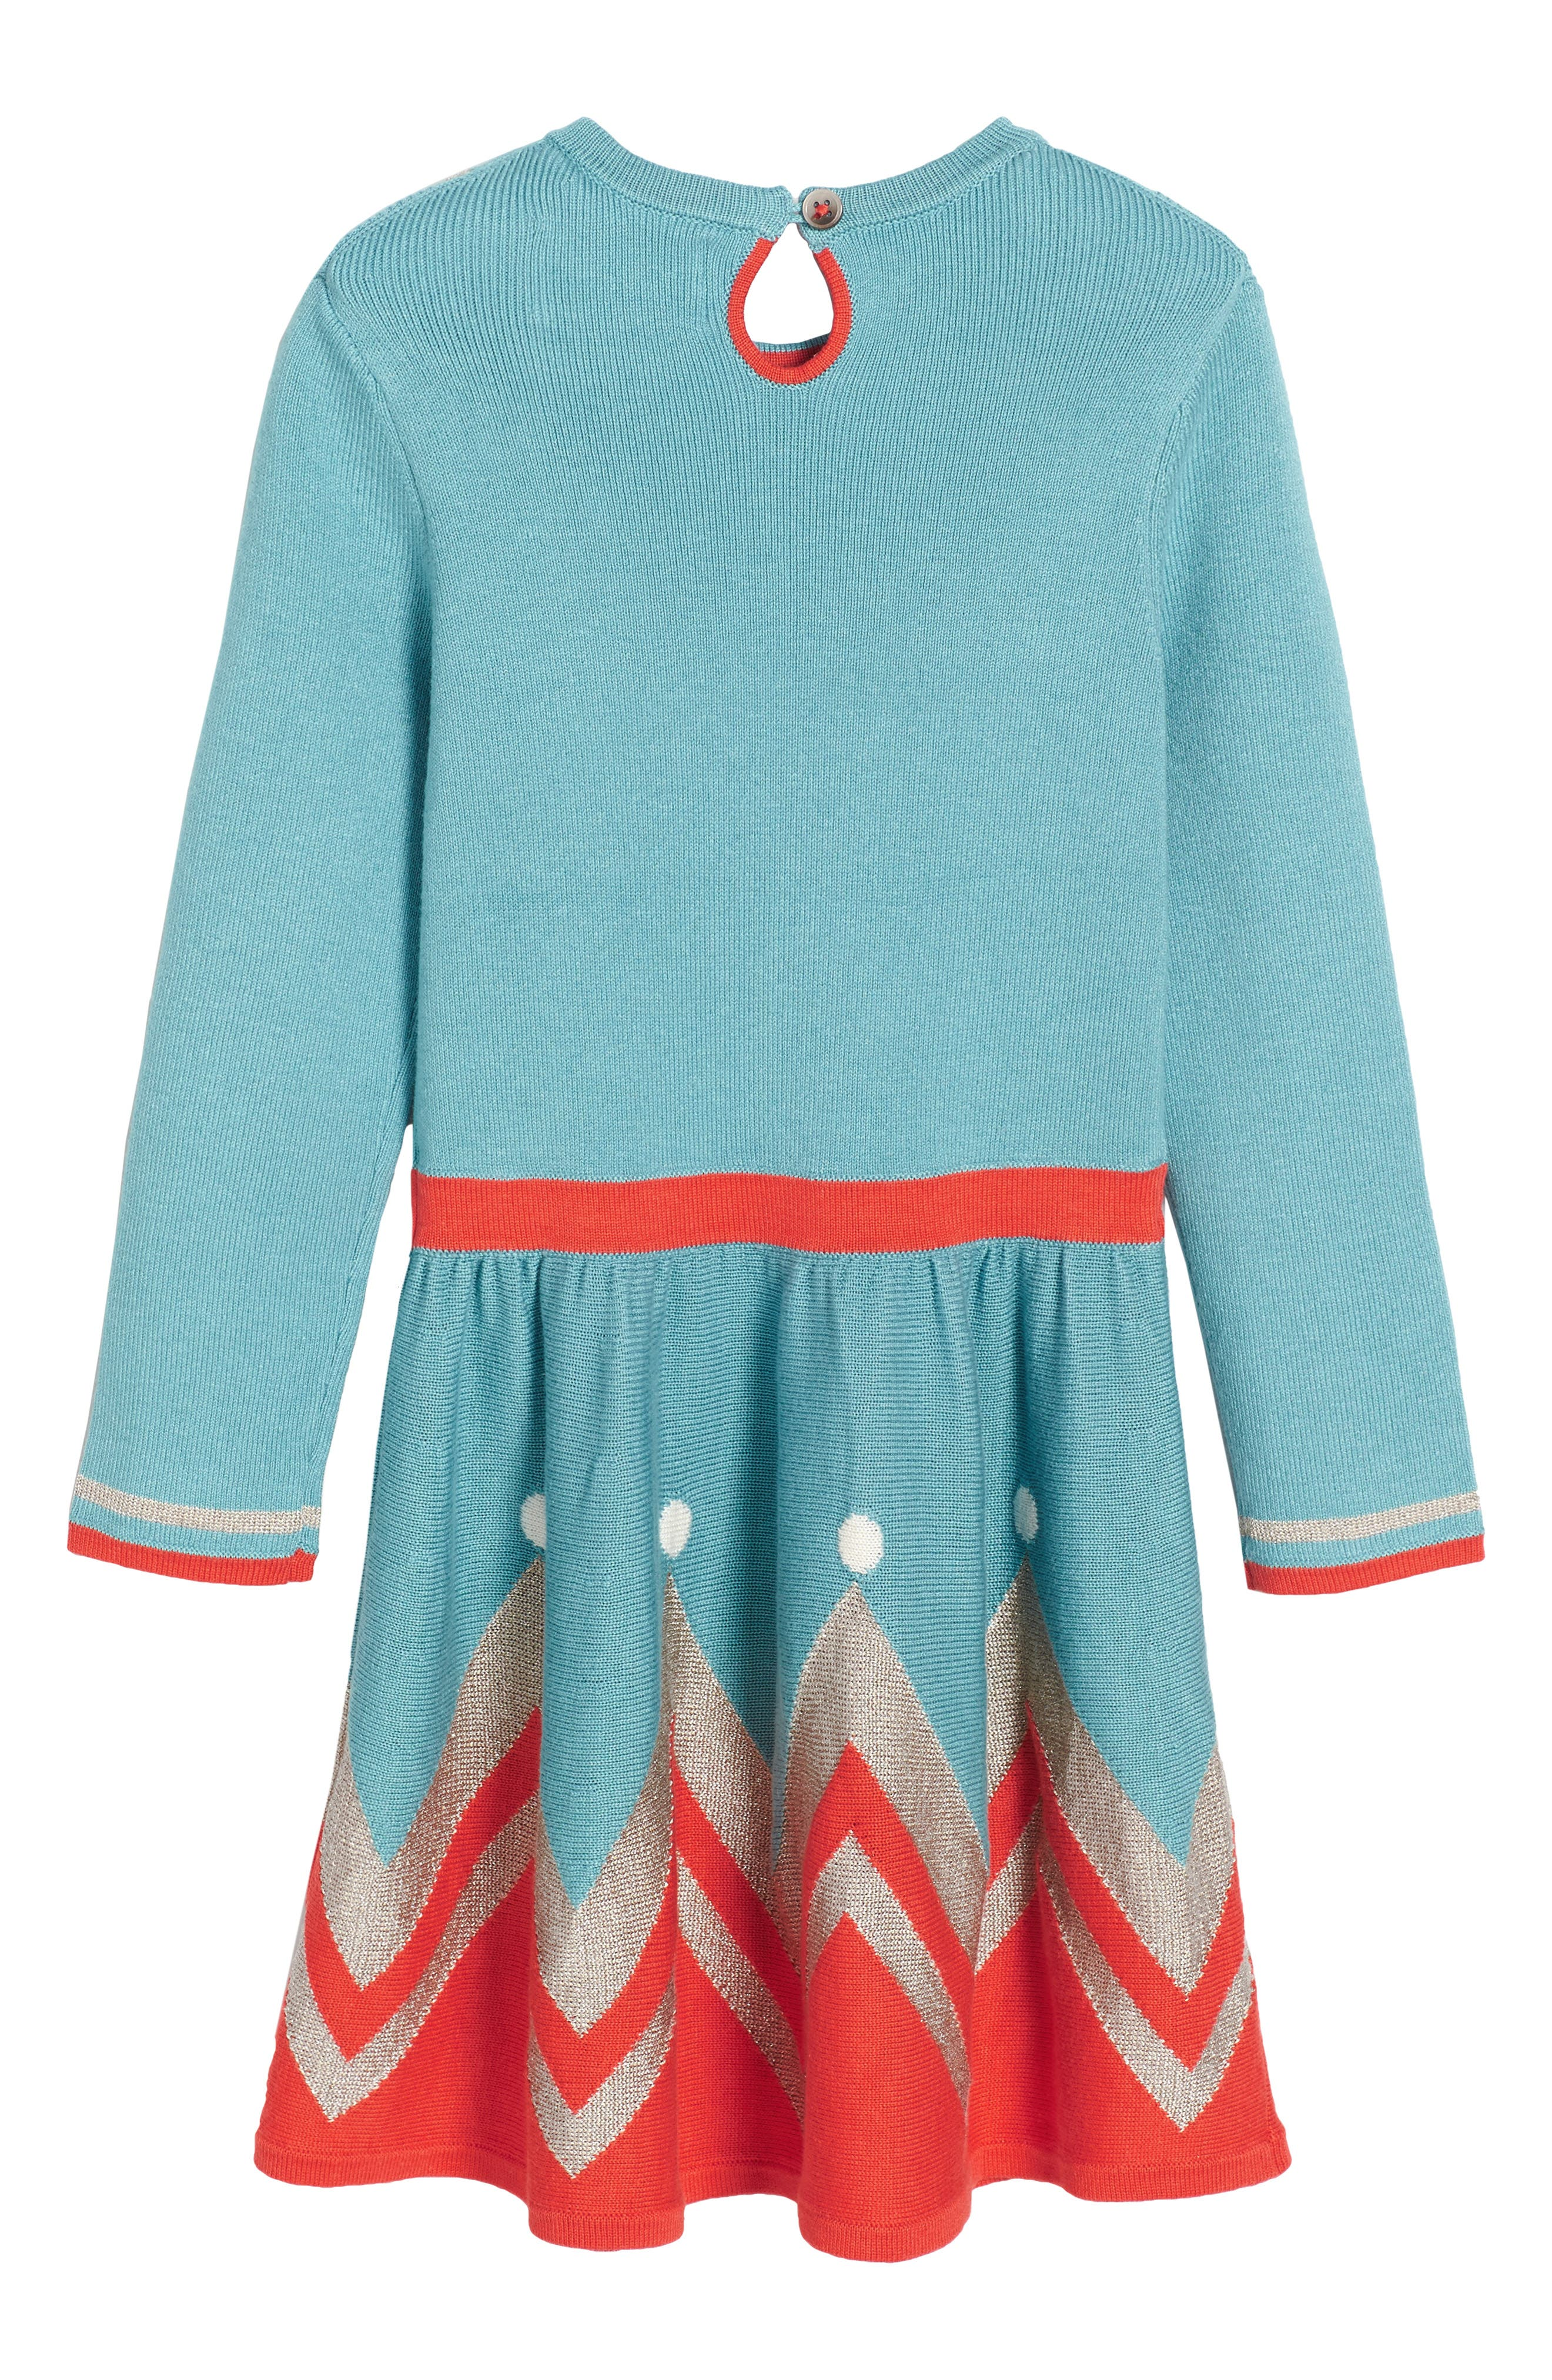 Alternate Image 2  - Mini Boden Sparkly Intarsia Knit Dress (Toddler Girls, Little Girls & Big Girls)